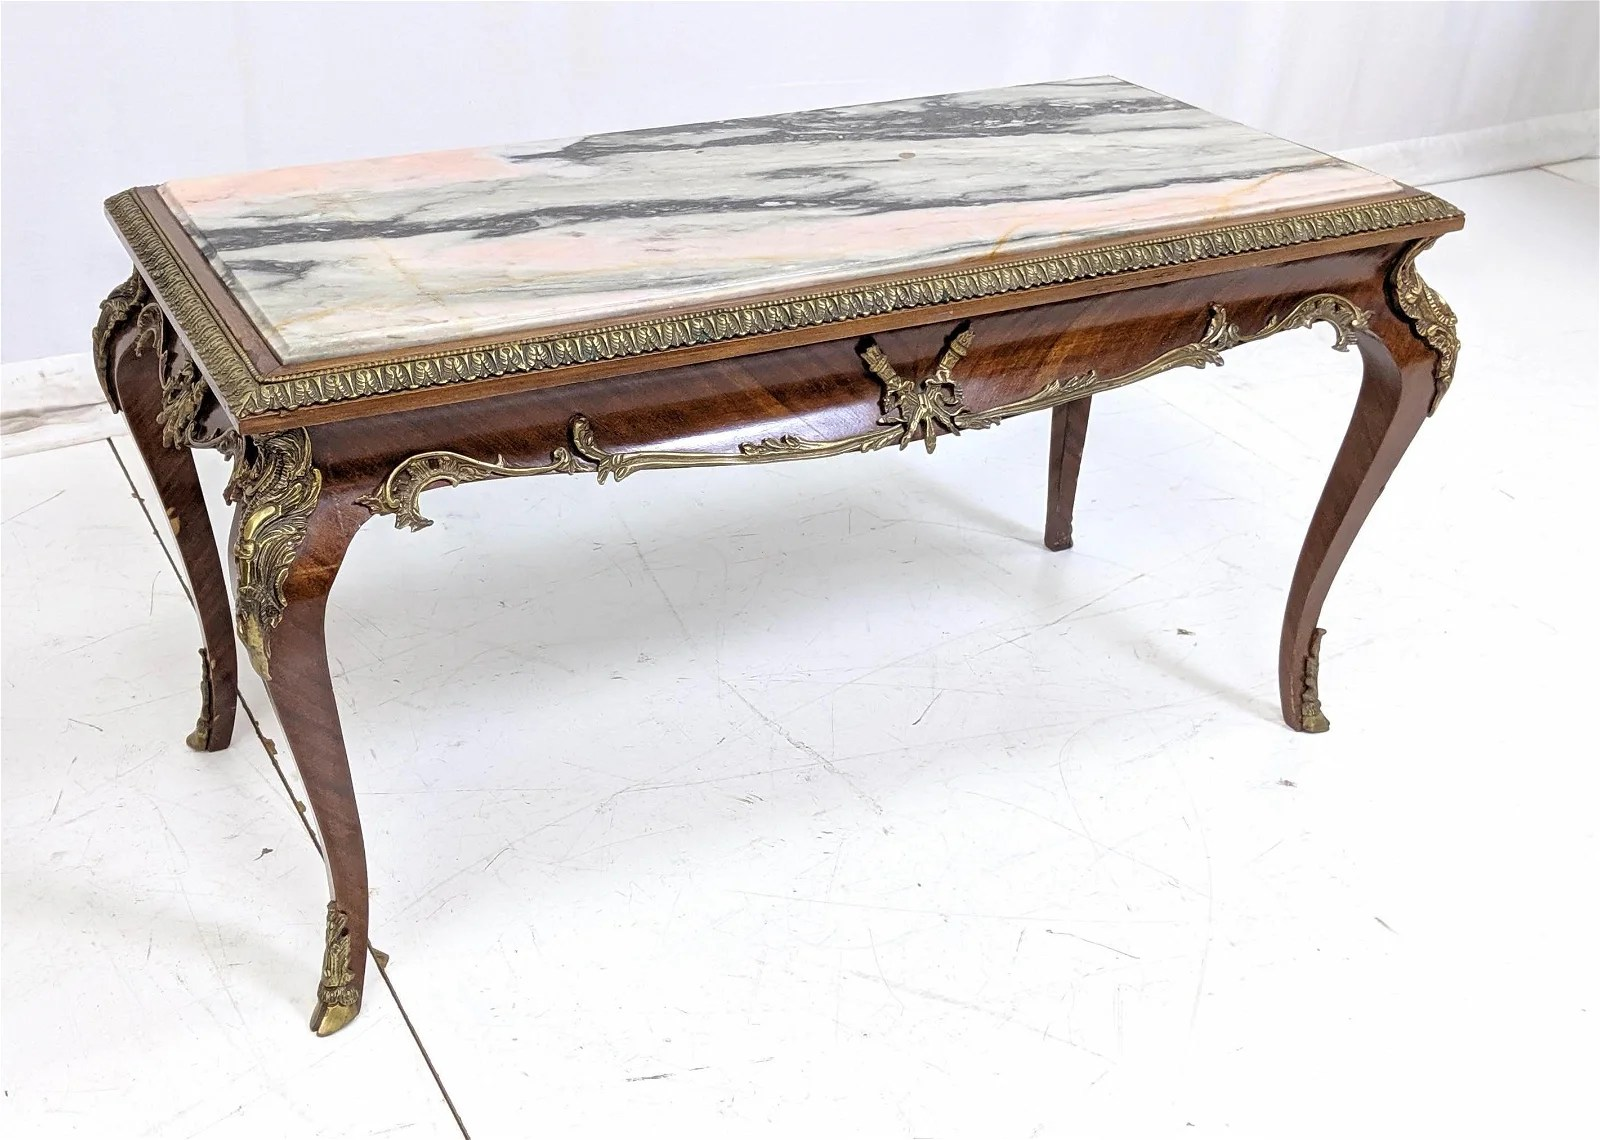 Antique Marble Top Coffee Table With Brass Mounts Sep 10 2019 Uniques Antiques Inc In Pa